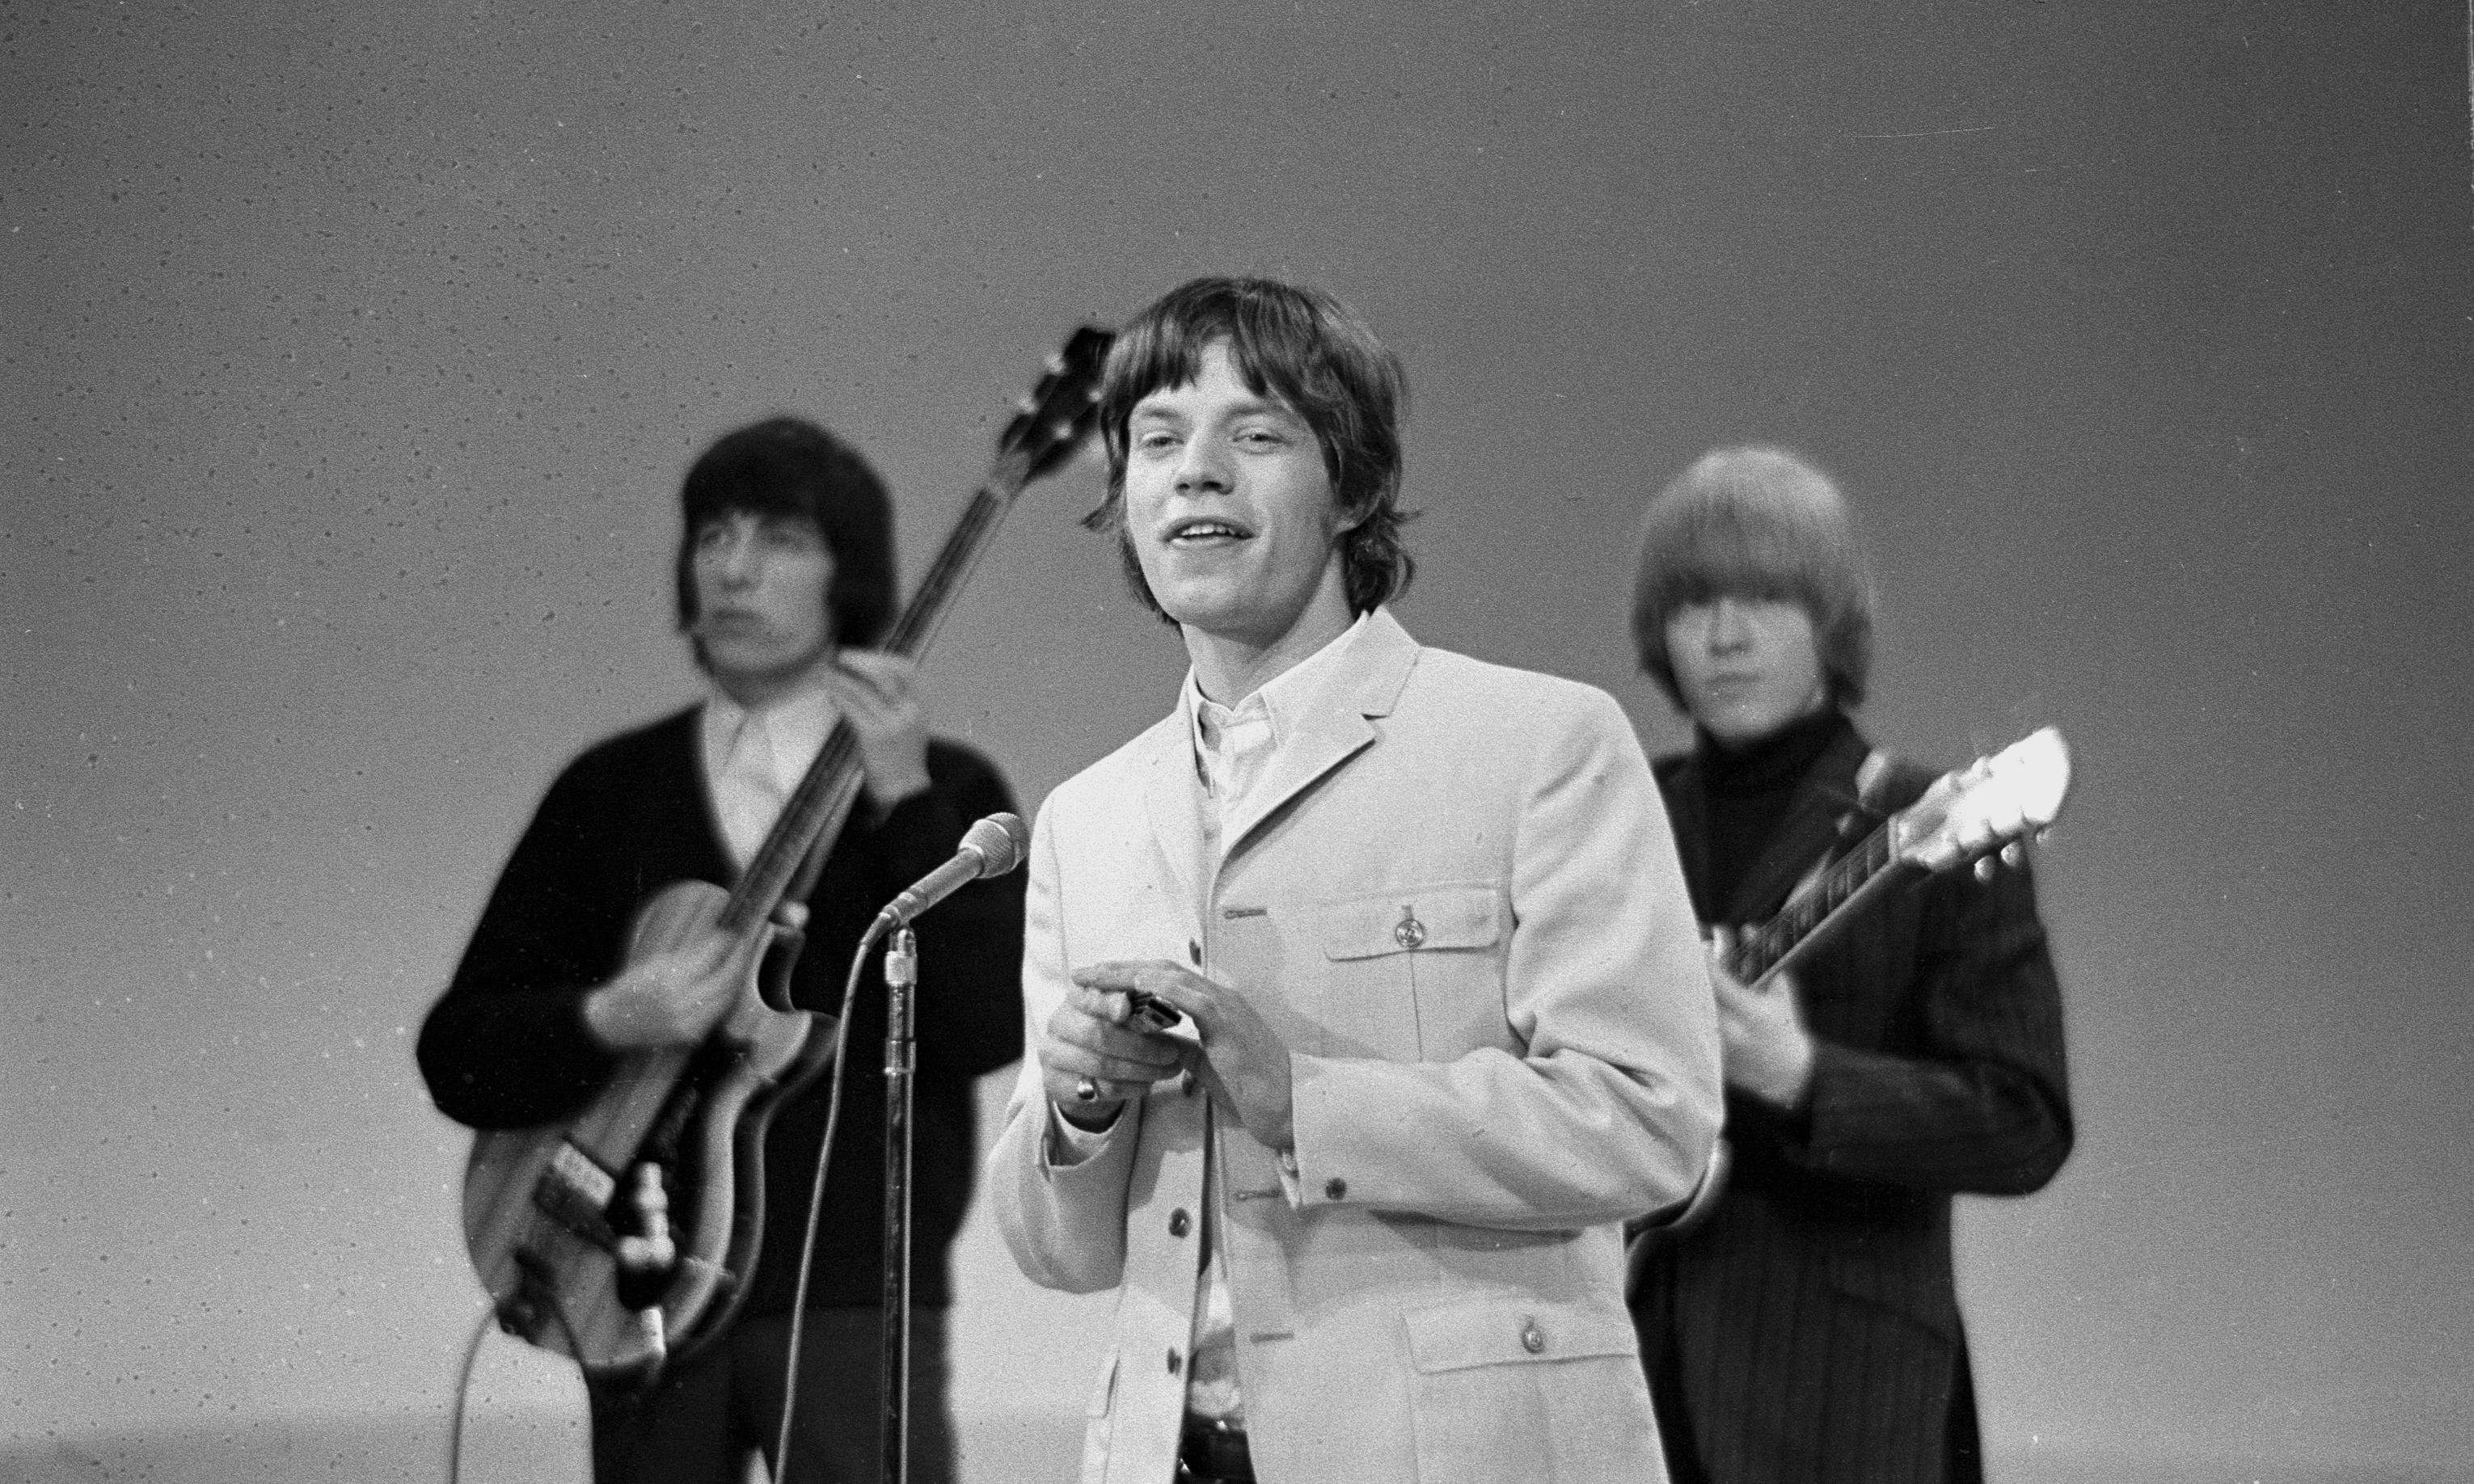 Jumping Jack cash: how young Mick Jagger planned his pension